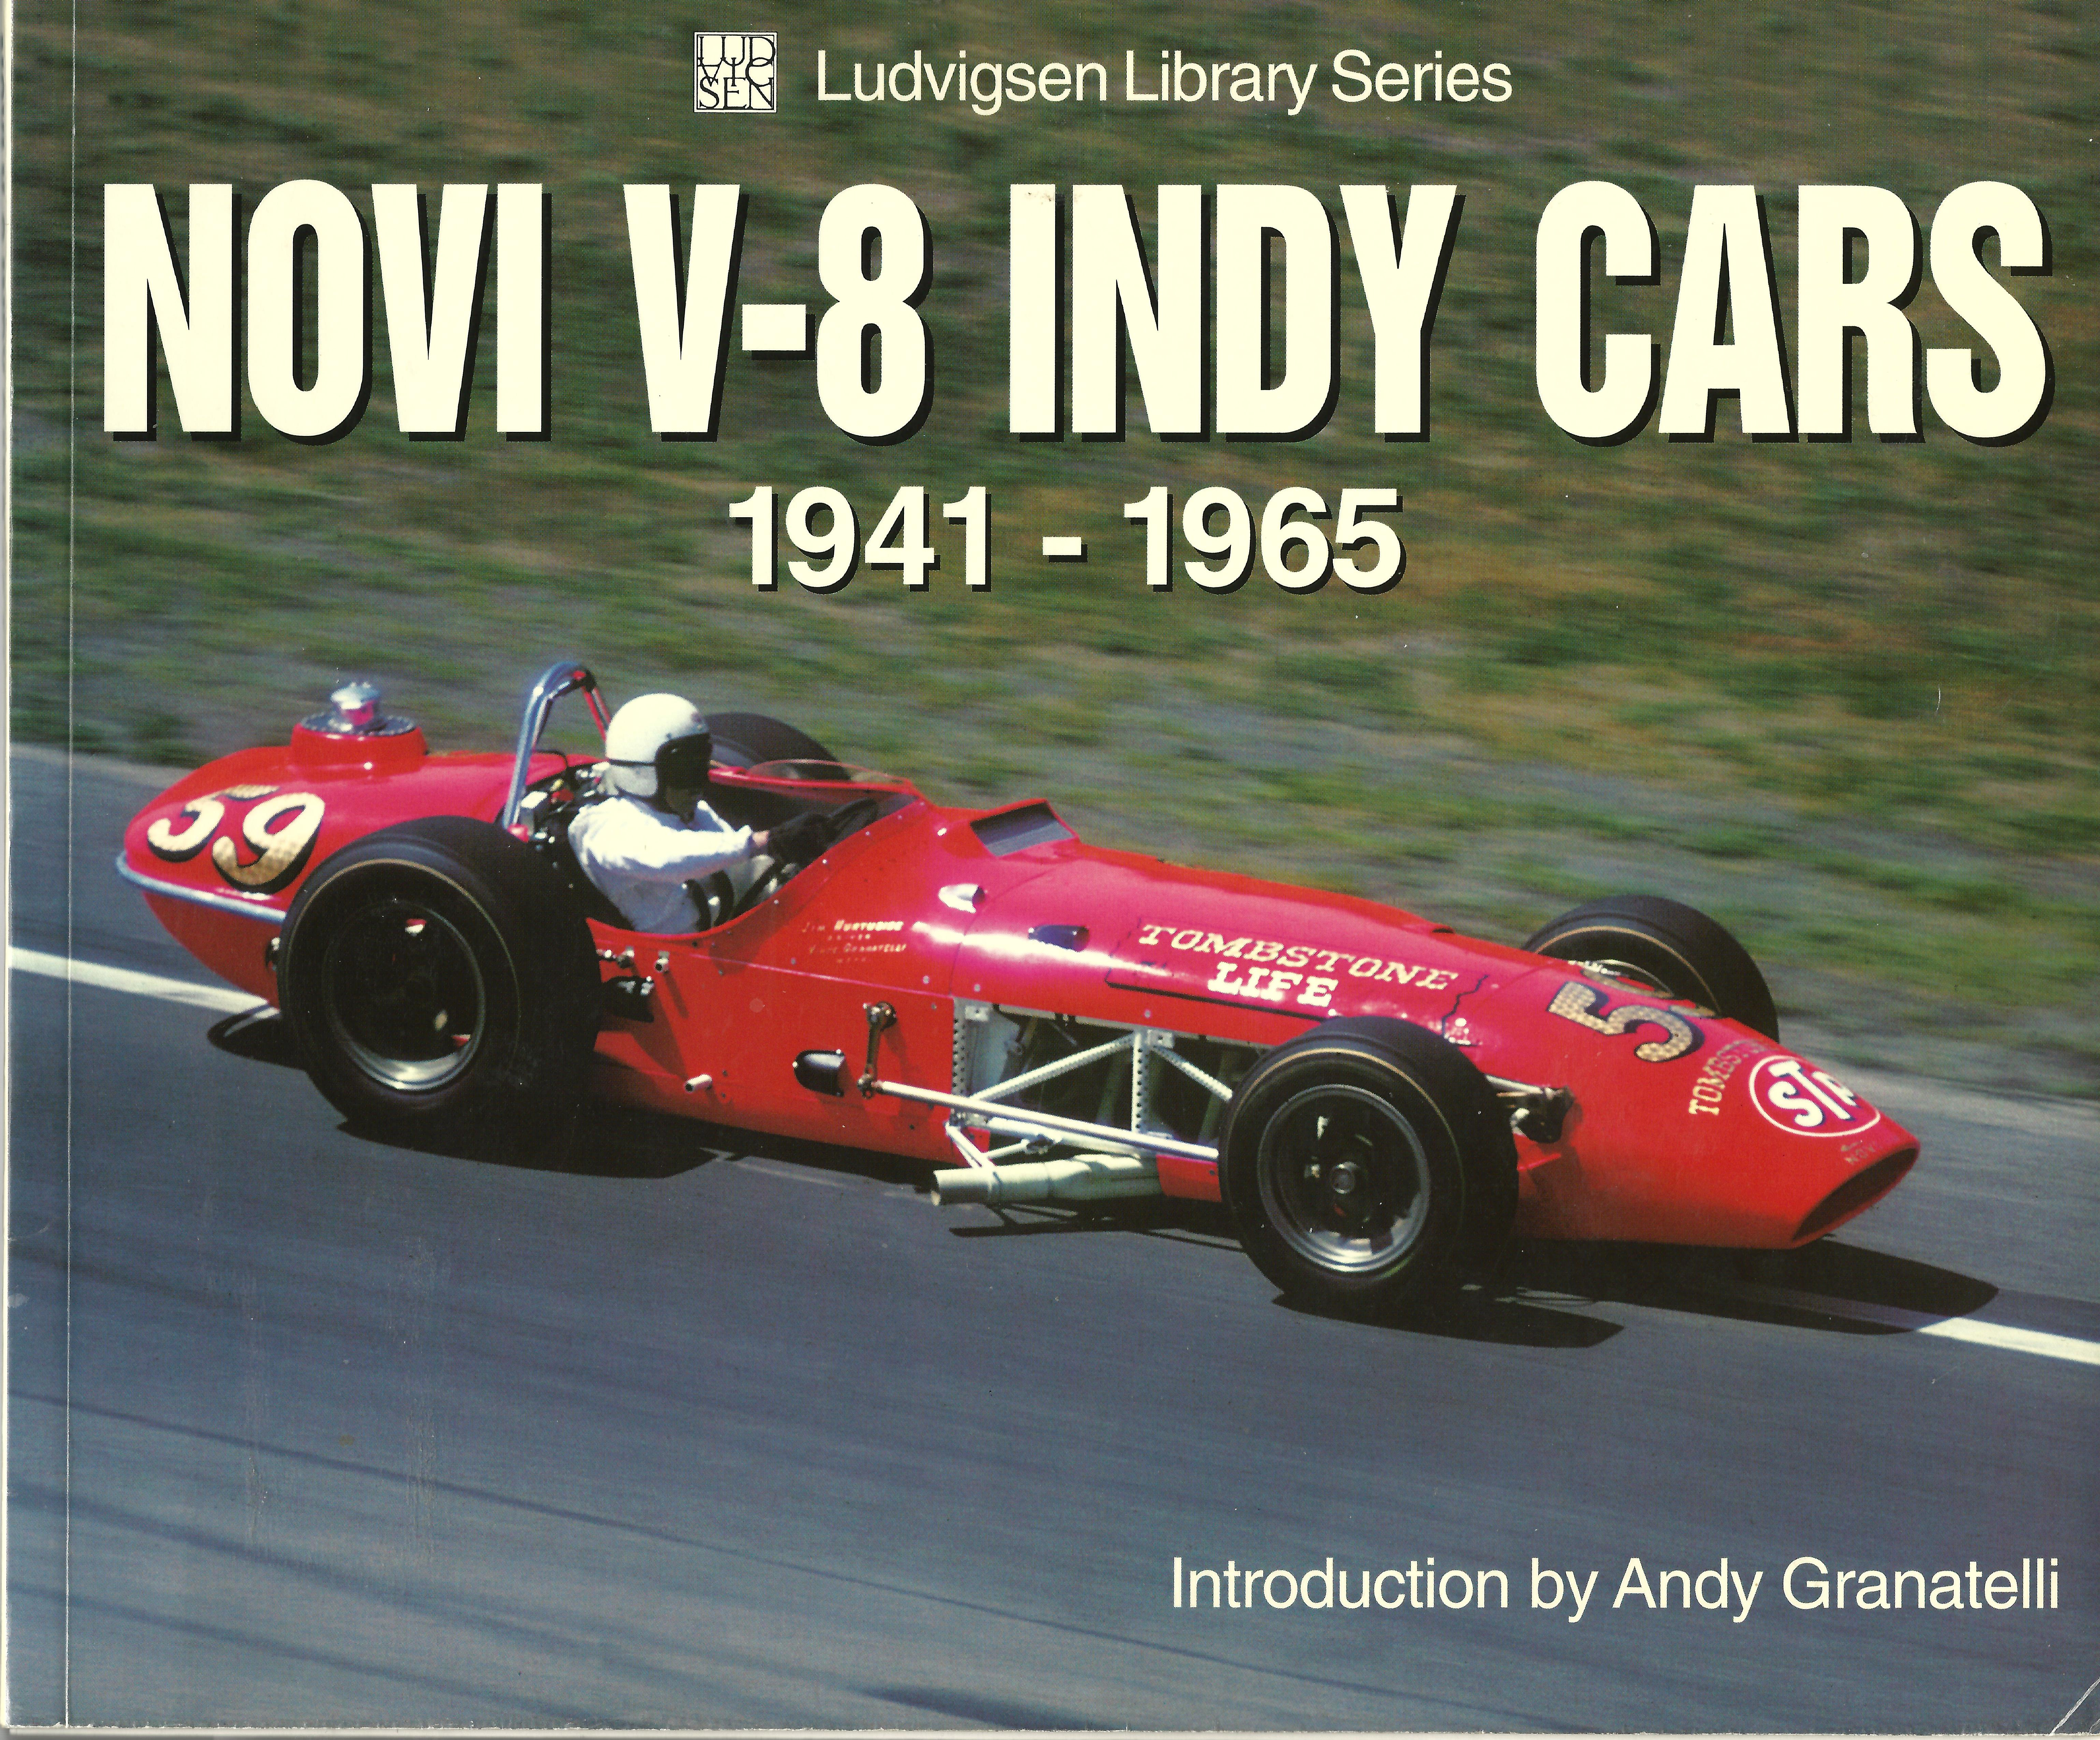 karl ludvigsens book about the novi cars